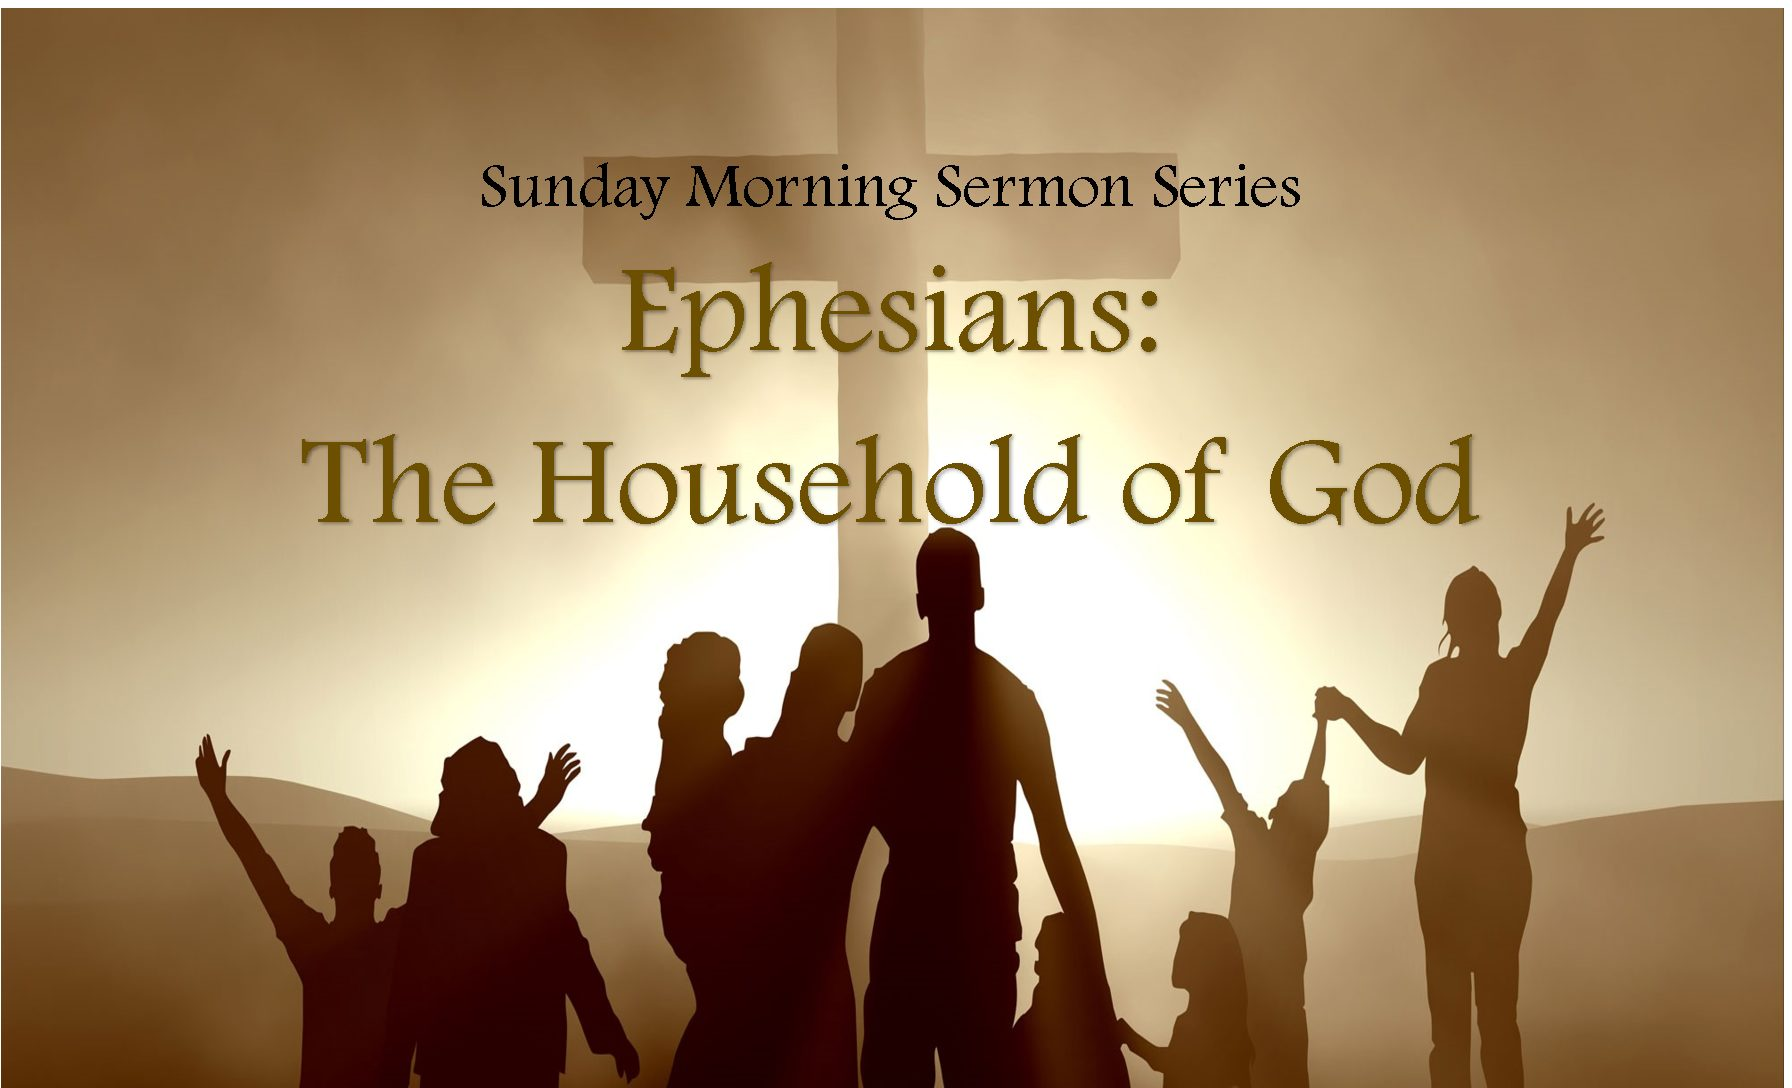 The Household of God: Knowing God's Love (Part 2)